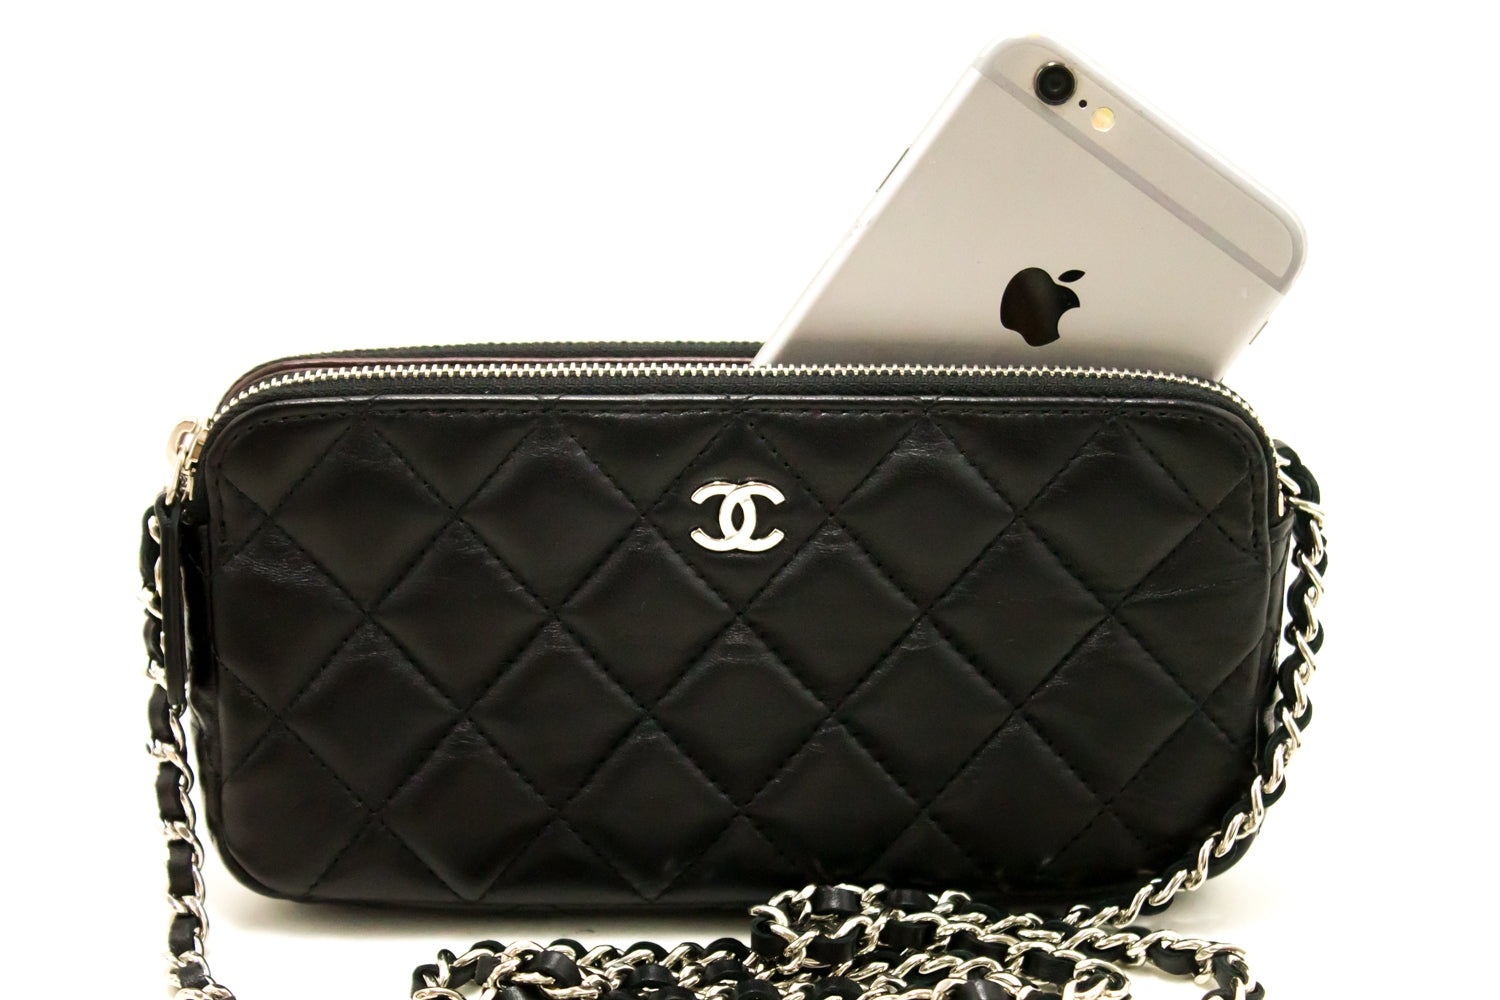 ... CHANEL Wallet On Chain WOC Double Zip Chain Shoulder Bag Black j30 ... 229980f19abe4